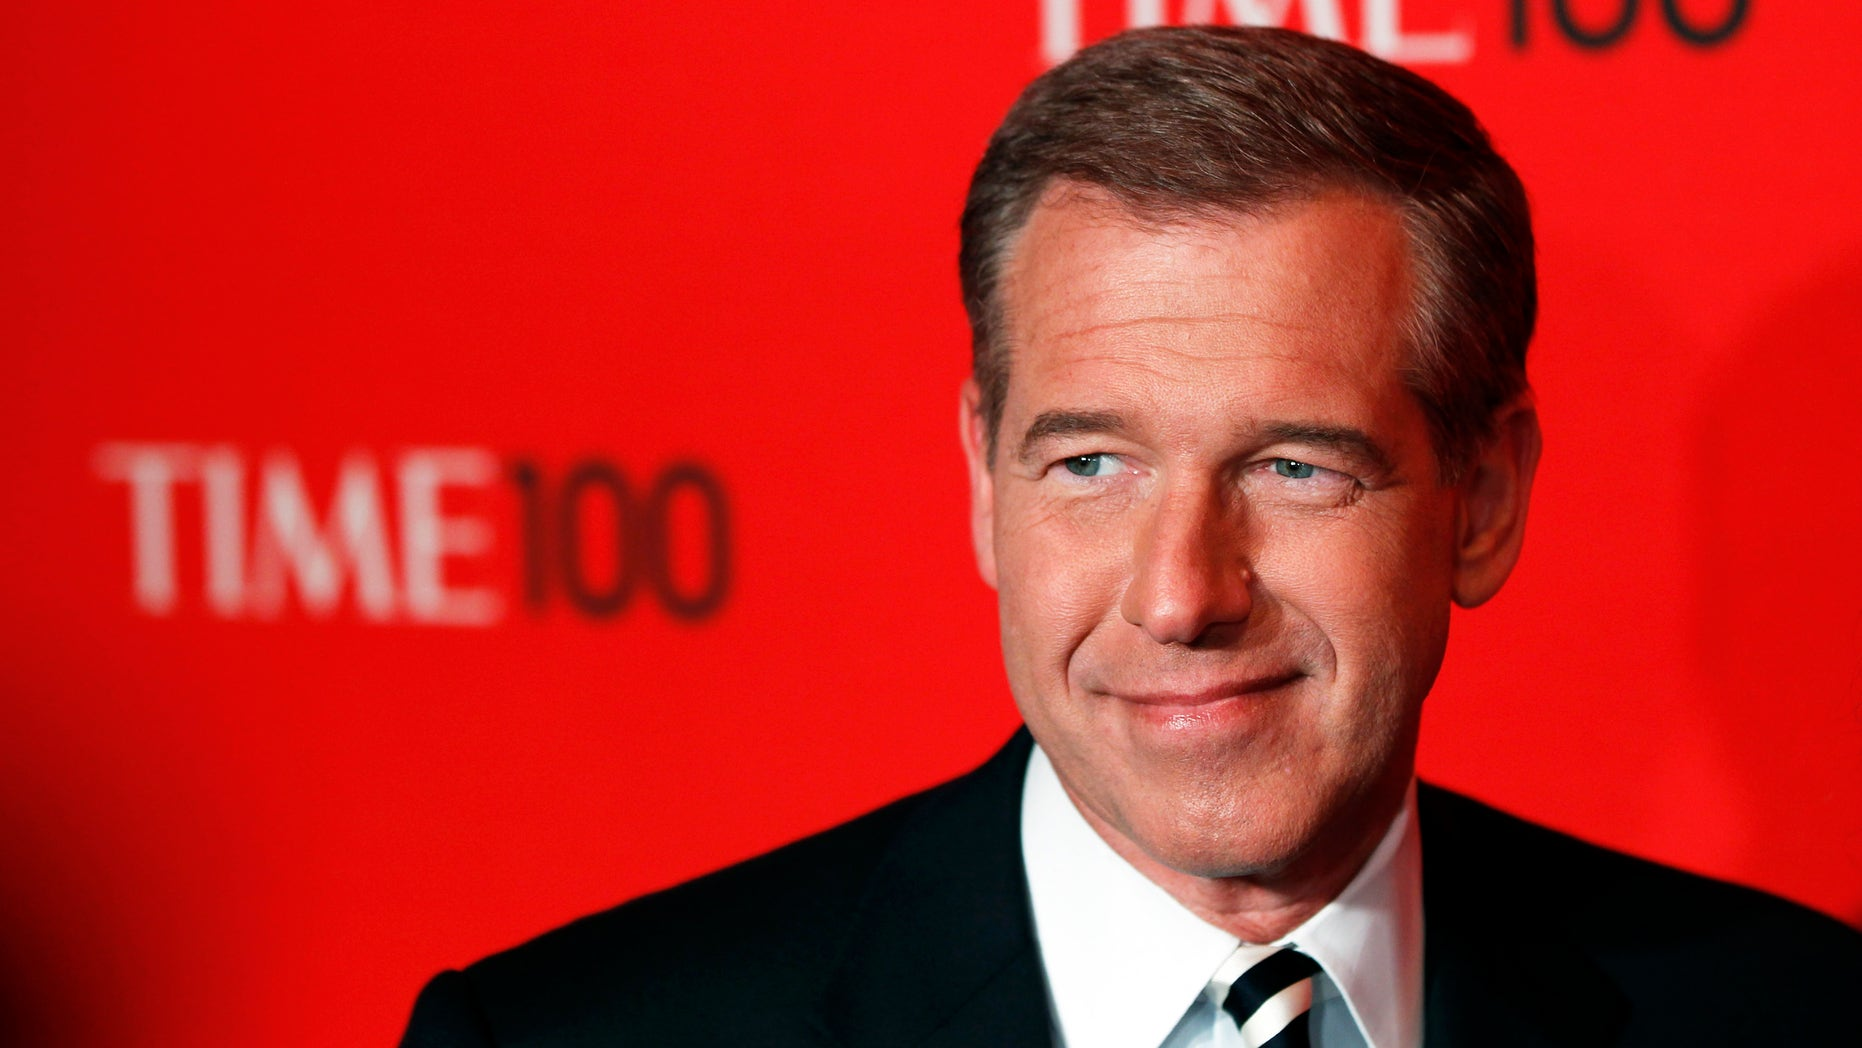 Television personality Brian Williams arrives at the Time 100 Gala in New York, April 24, 2012. The Time 100 is an annual list of the 100 most influential people in the last year complied by Time Magazine. REUTERS/Lucas Jackson (UNITED STATES - Tags: ENTERTAINMENT) - RTR316MP